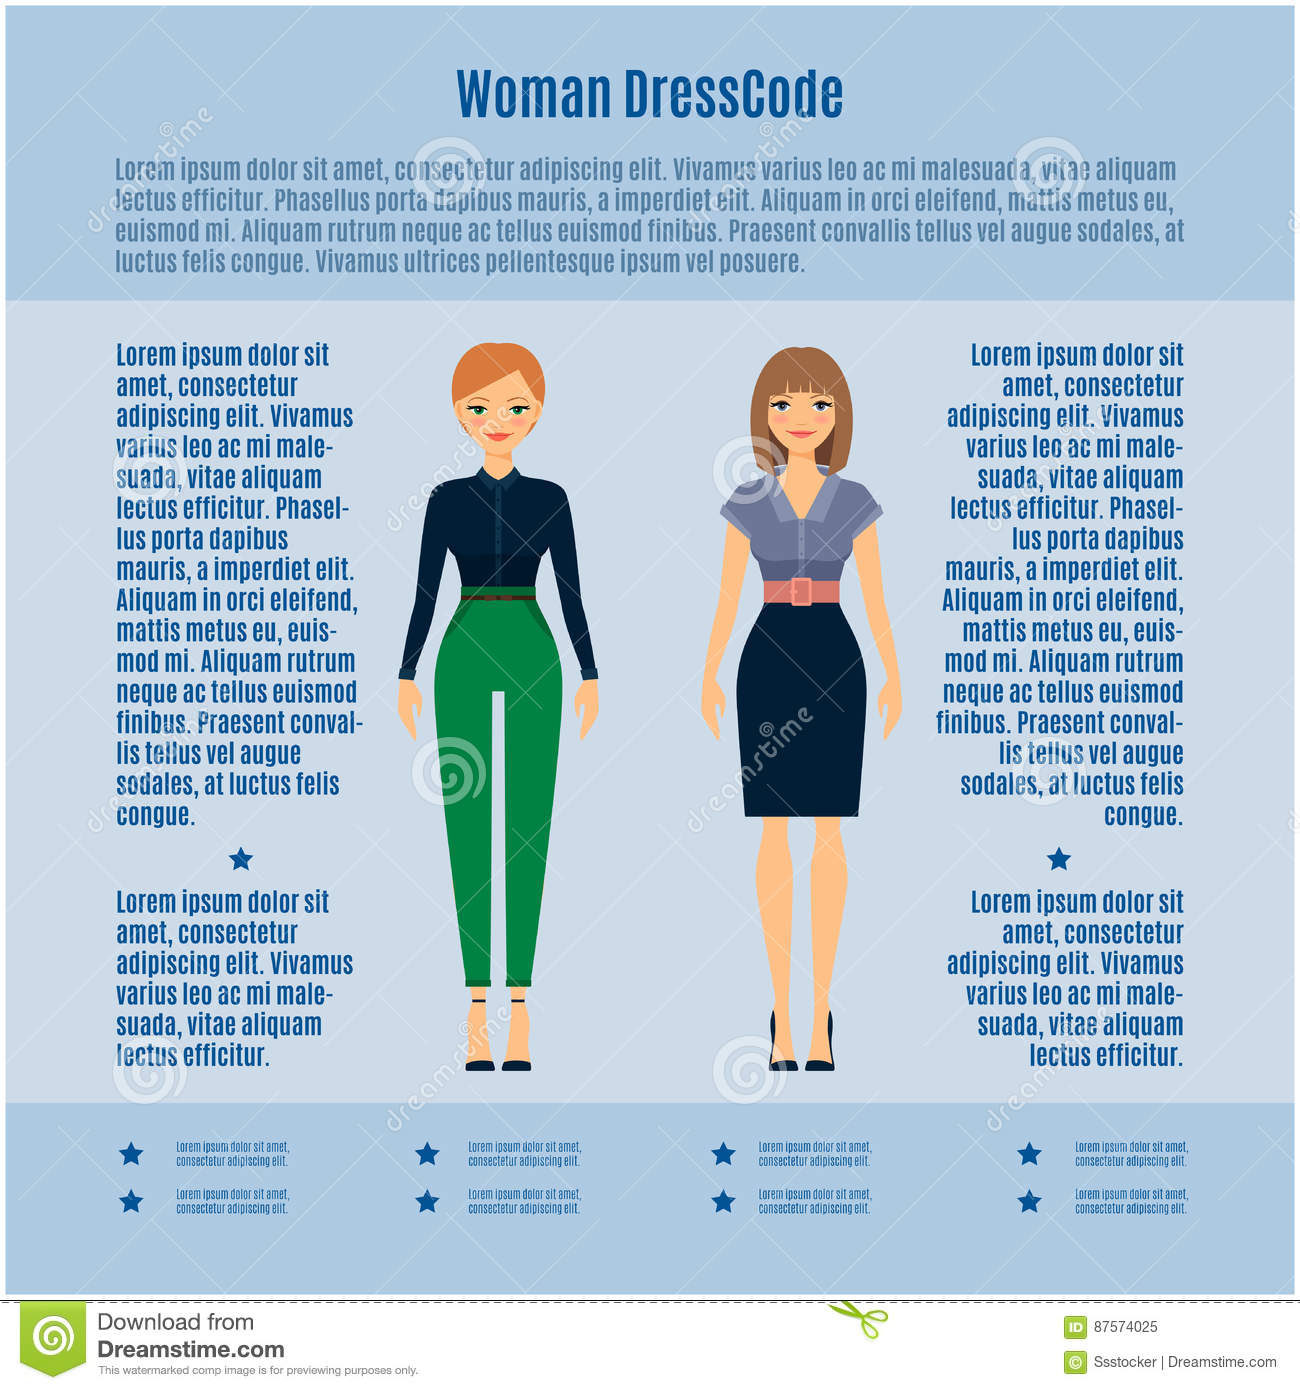 e3d9043cff Woman Dress Code Infographic Stock Vector - Illustration of casual ...